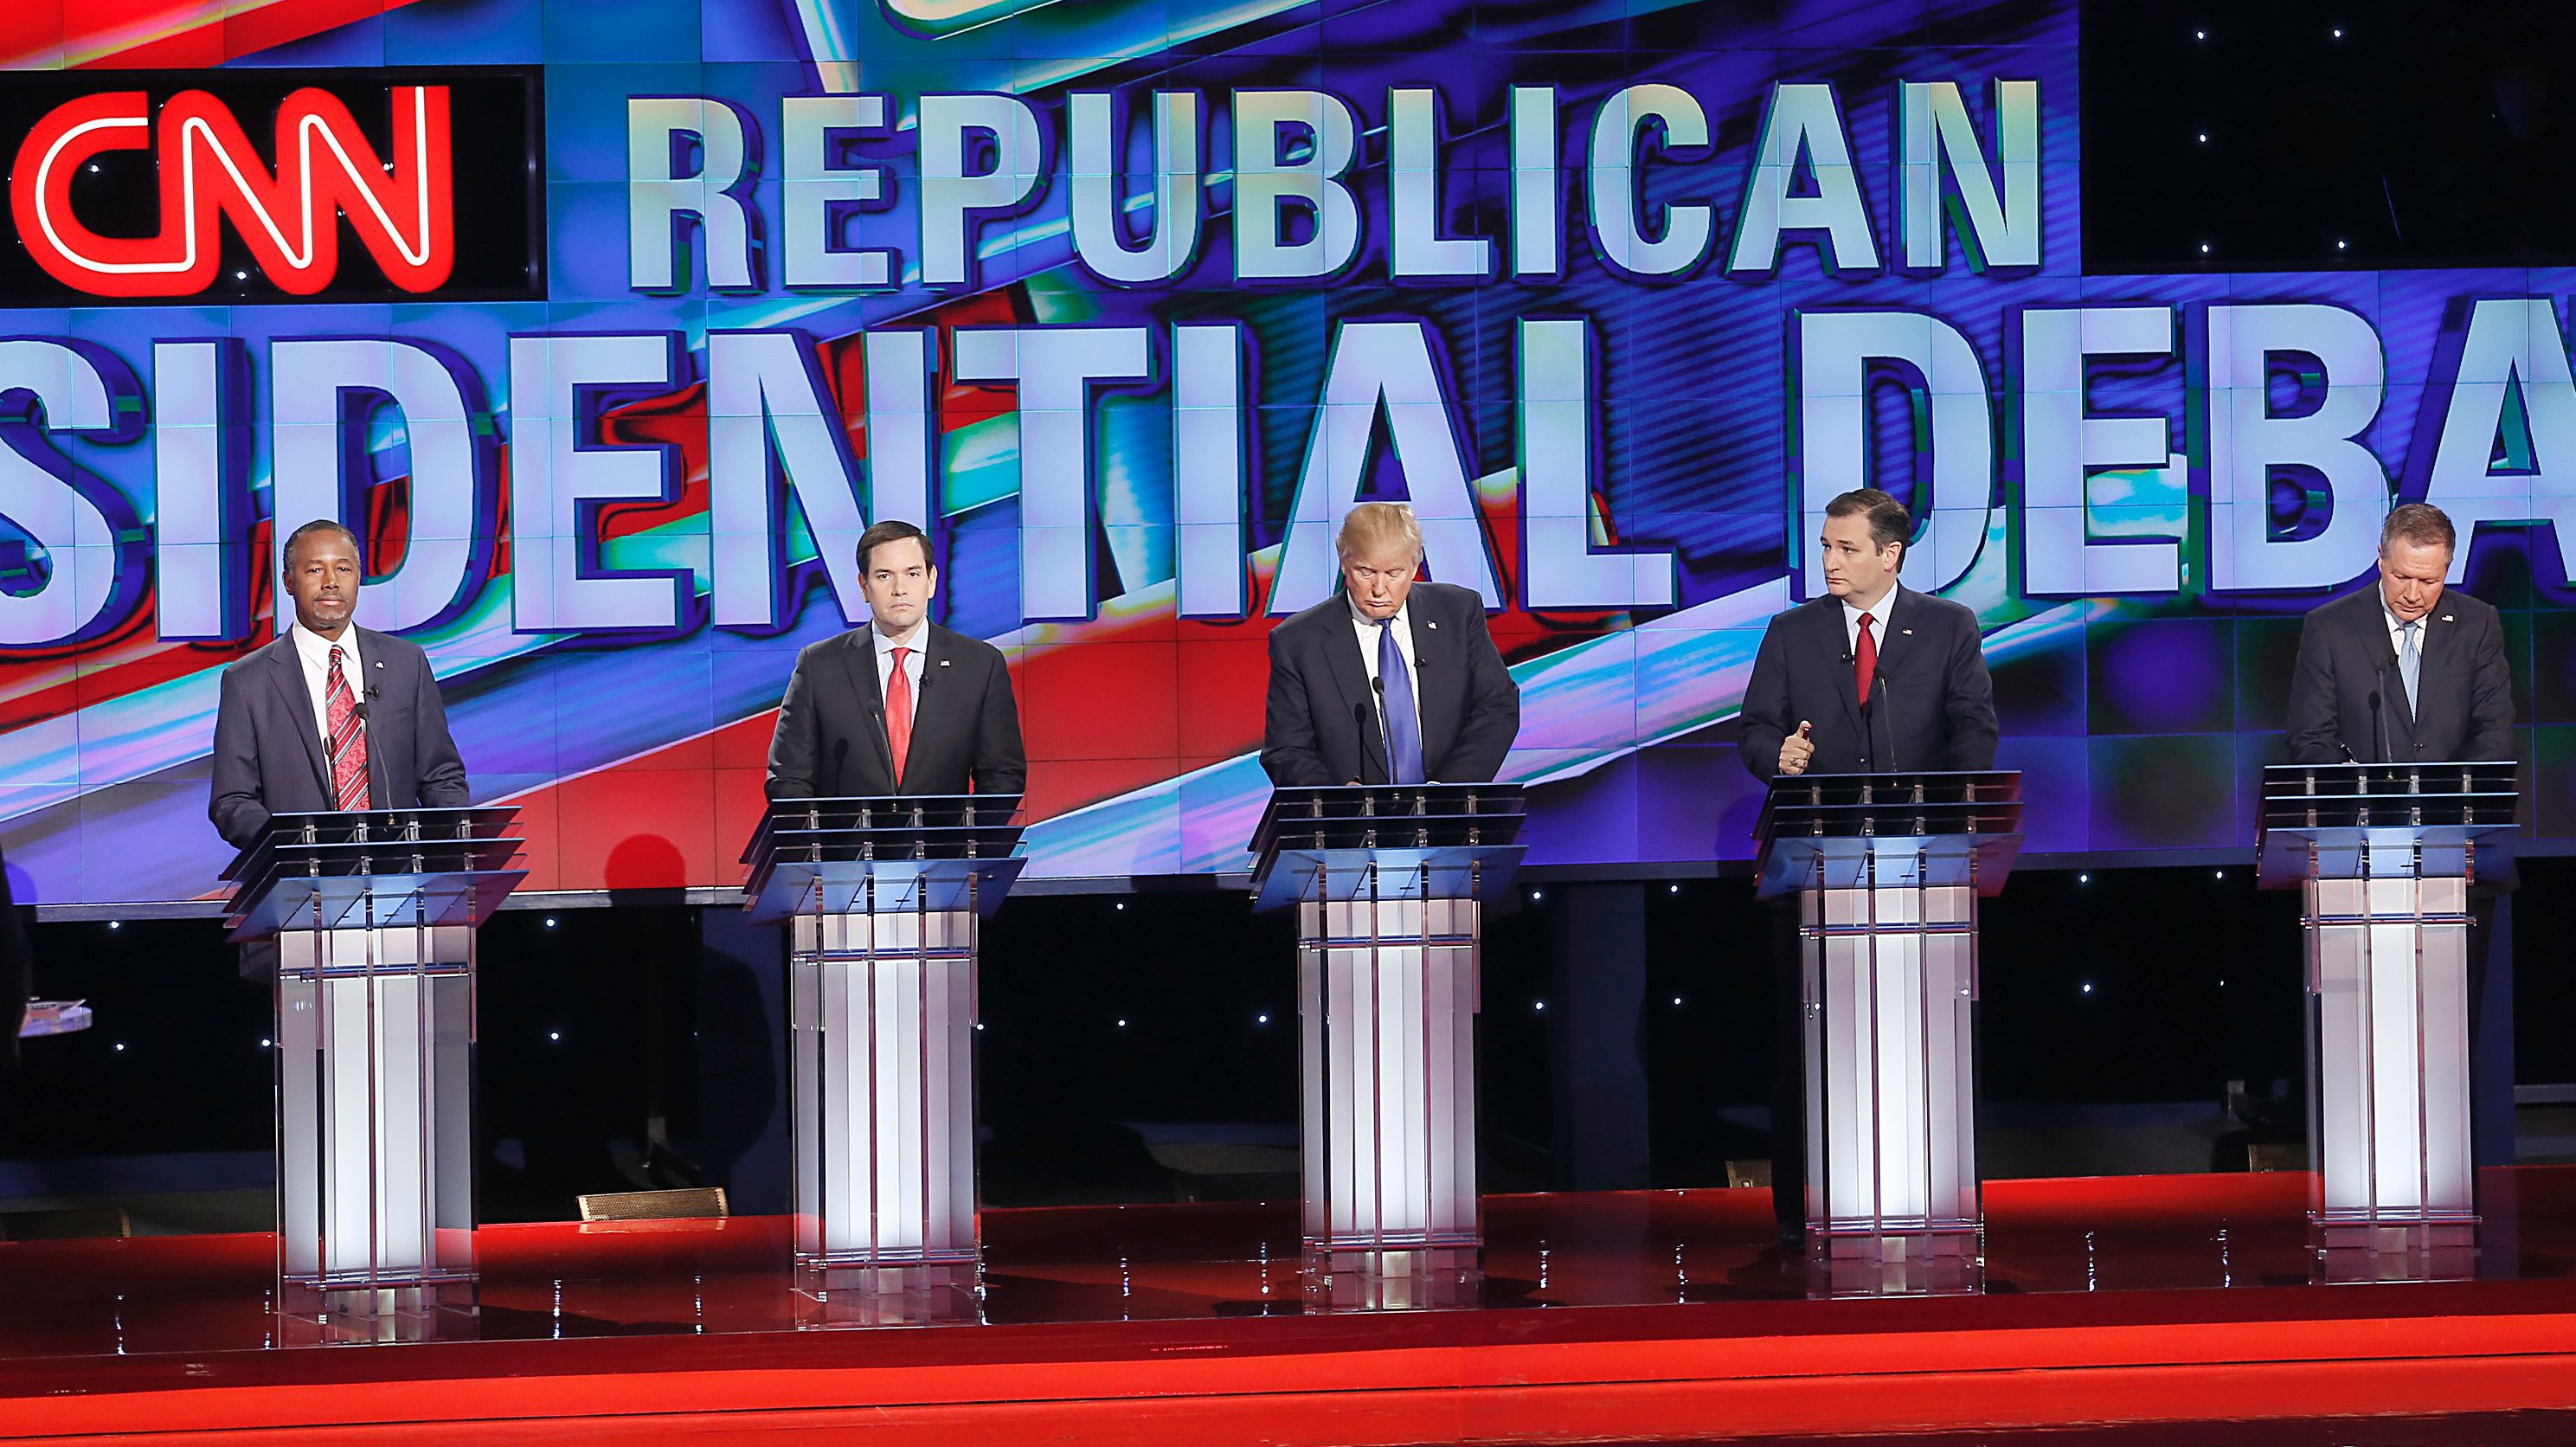 Republican Presidential Candidates, from left, Ben Carson , Marco Rubio , Donald Trump, Ted Cruz and John Kasich participate in the Republican Presidential Debate at the University of Houston in Houston, Texas on February 25, 2016.  (Getty)